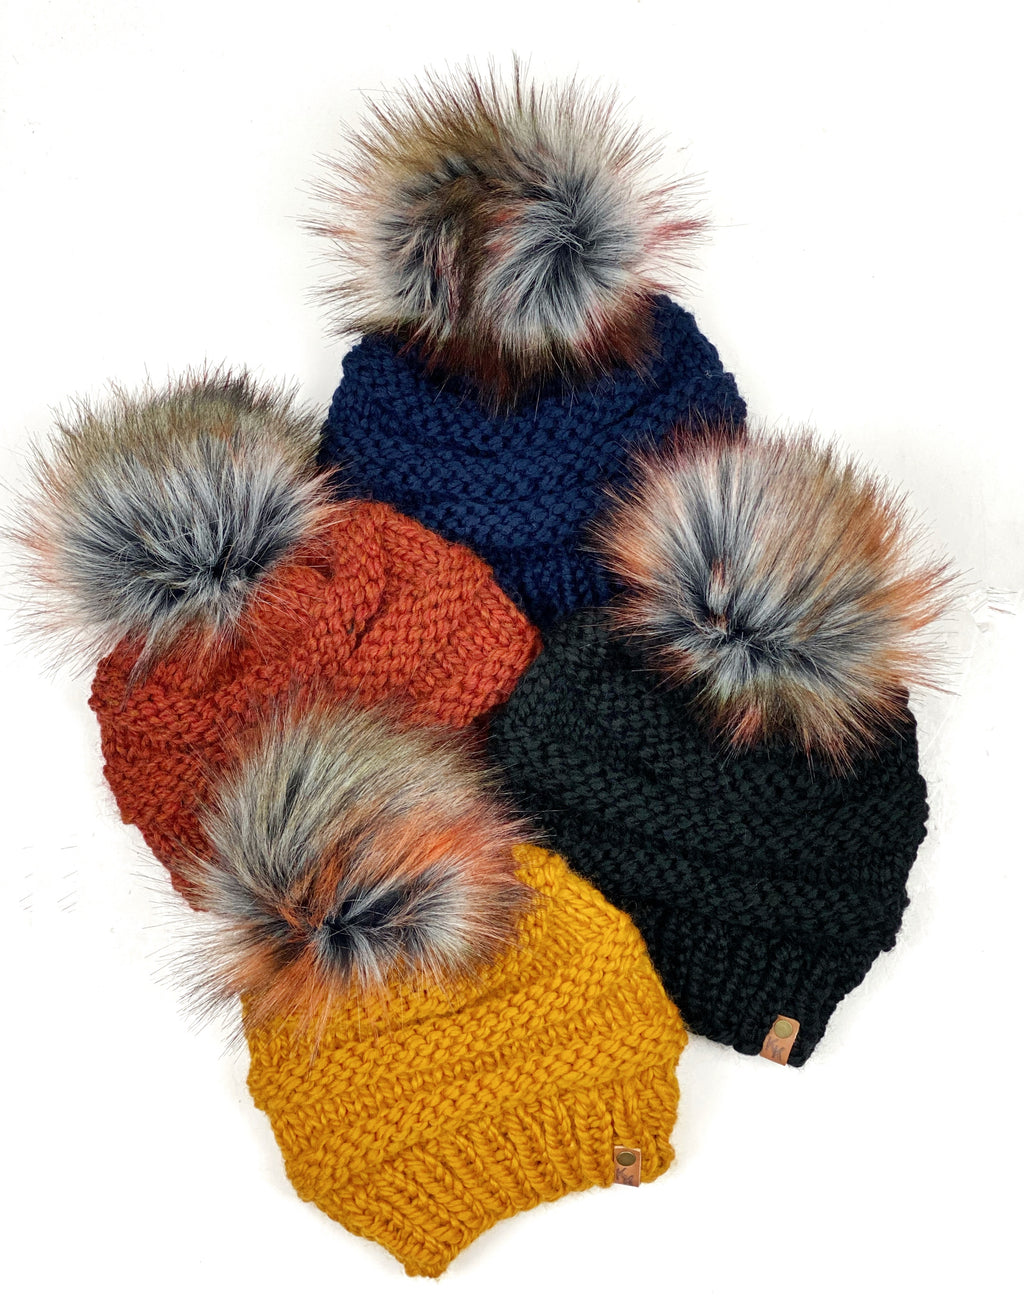 The Freddie Beanie, Womens Knit Hat, Copy Cat Beanie, Wool Blend Autumn Storm Faux Fur Pom